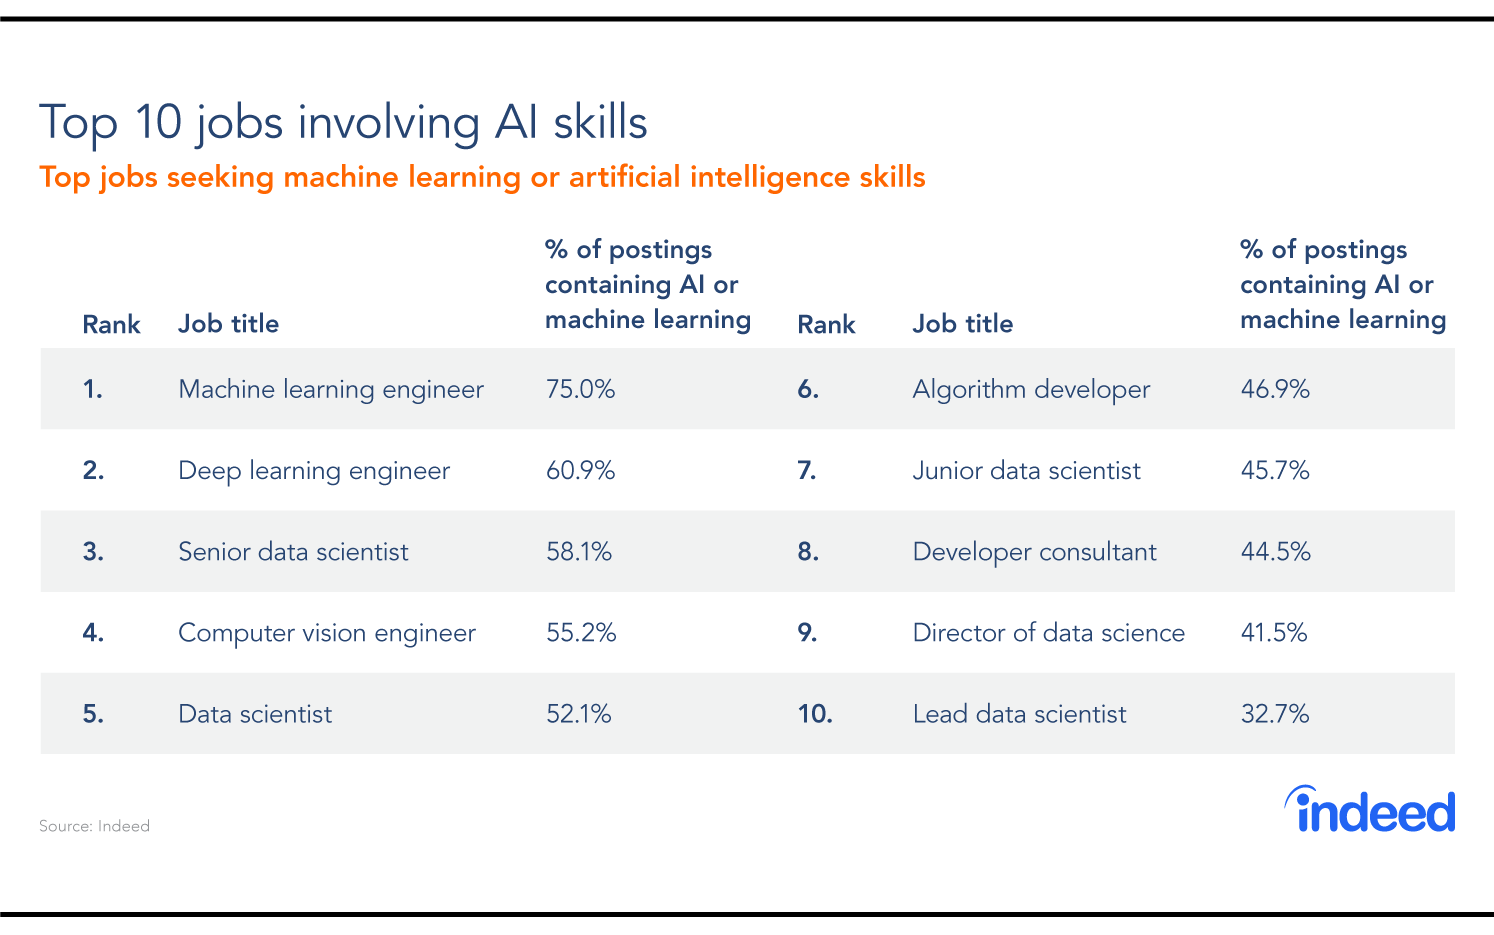 Machine learning and deep learning engineers rule the top 10 AI jobs list